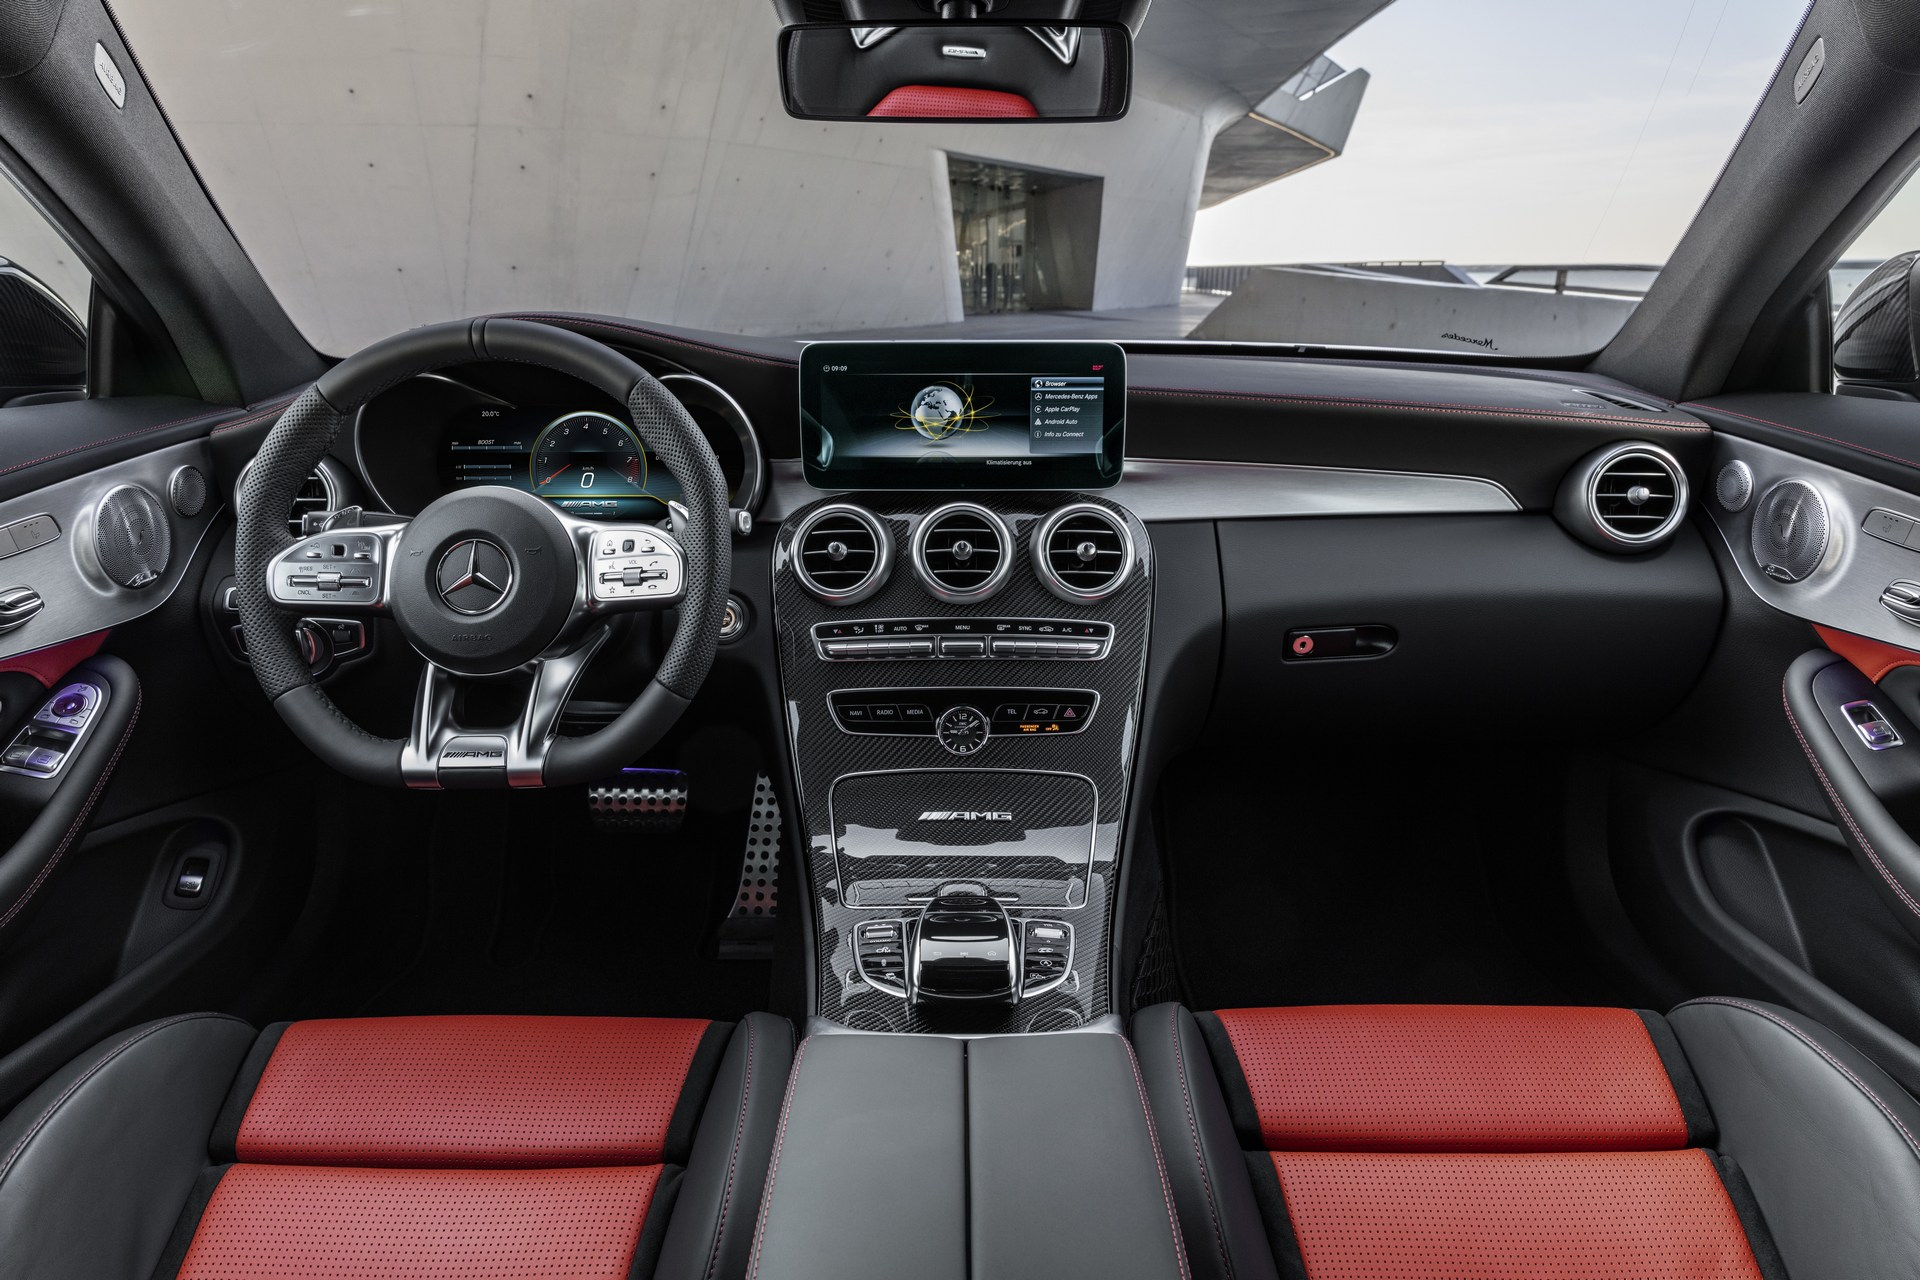 2019 mercedes amg c63 coupe debuts facelift look in new york autoevolution. Black Bedroom Furniture Sets. Home Design Ideas